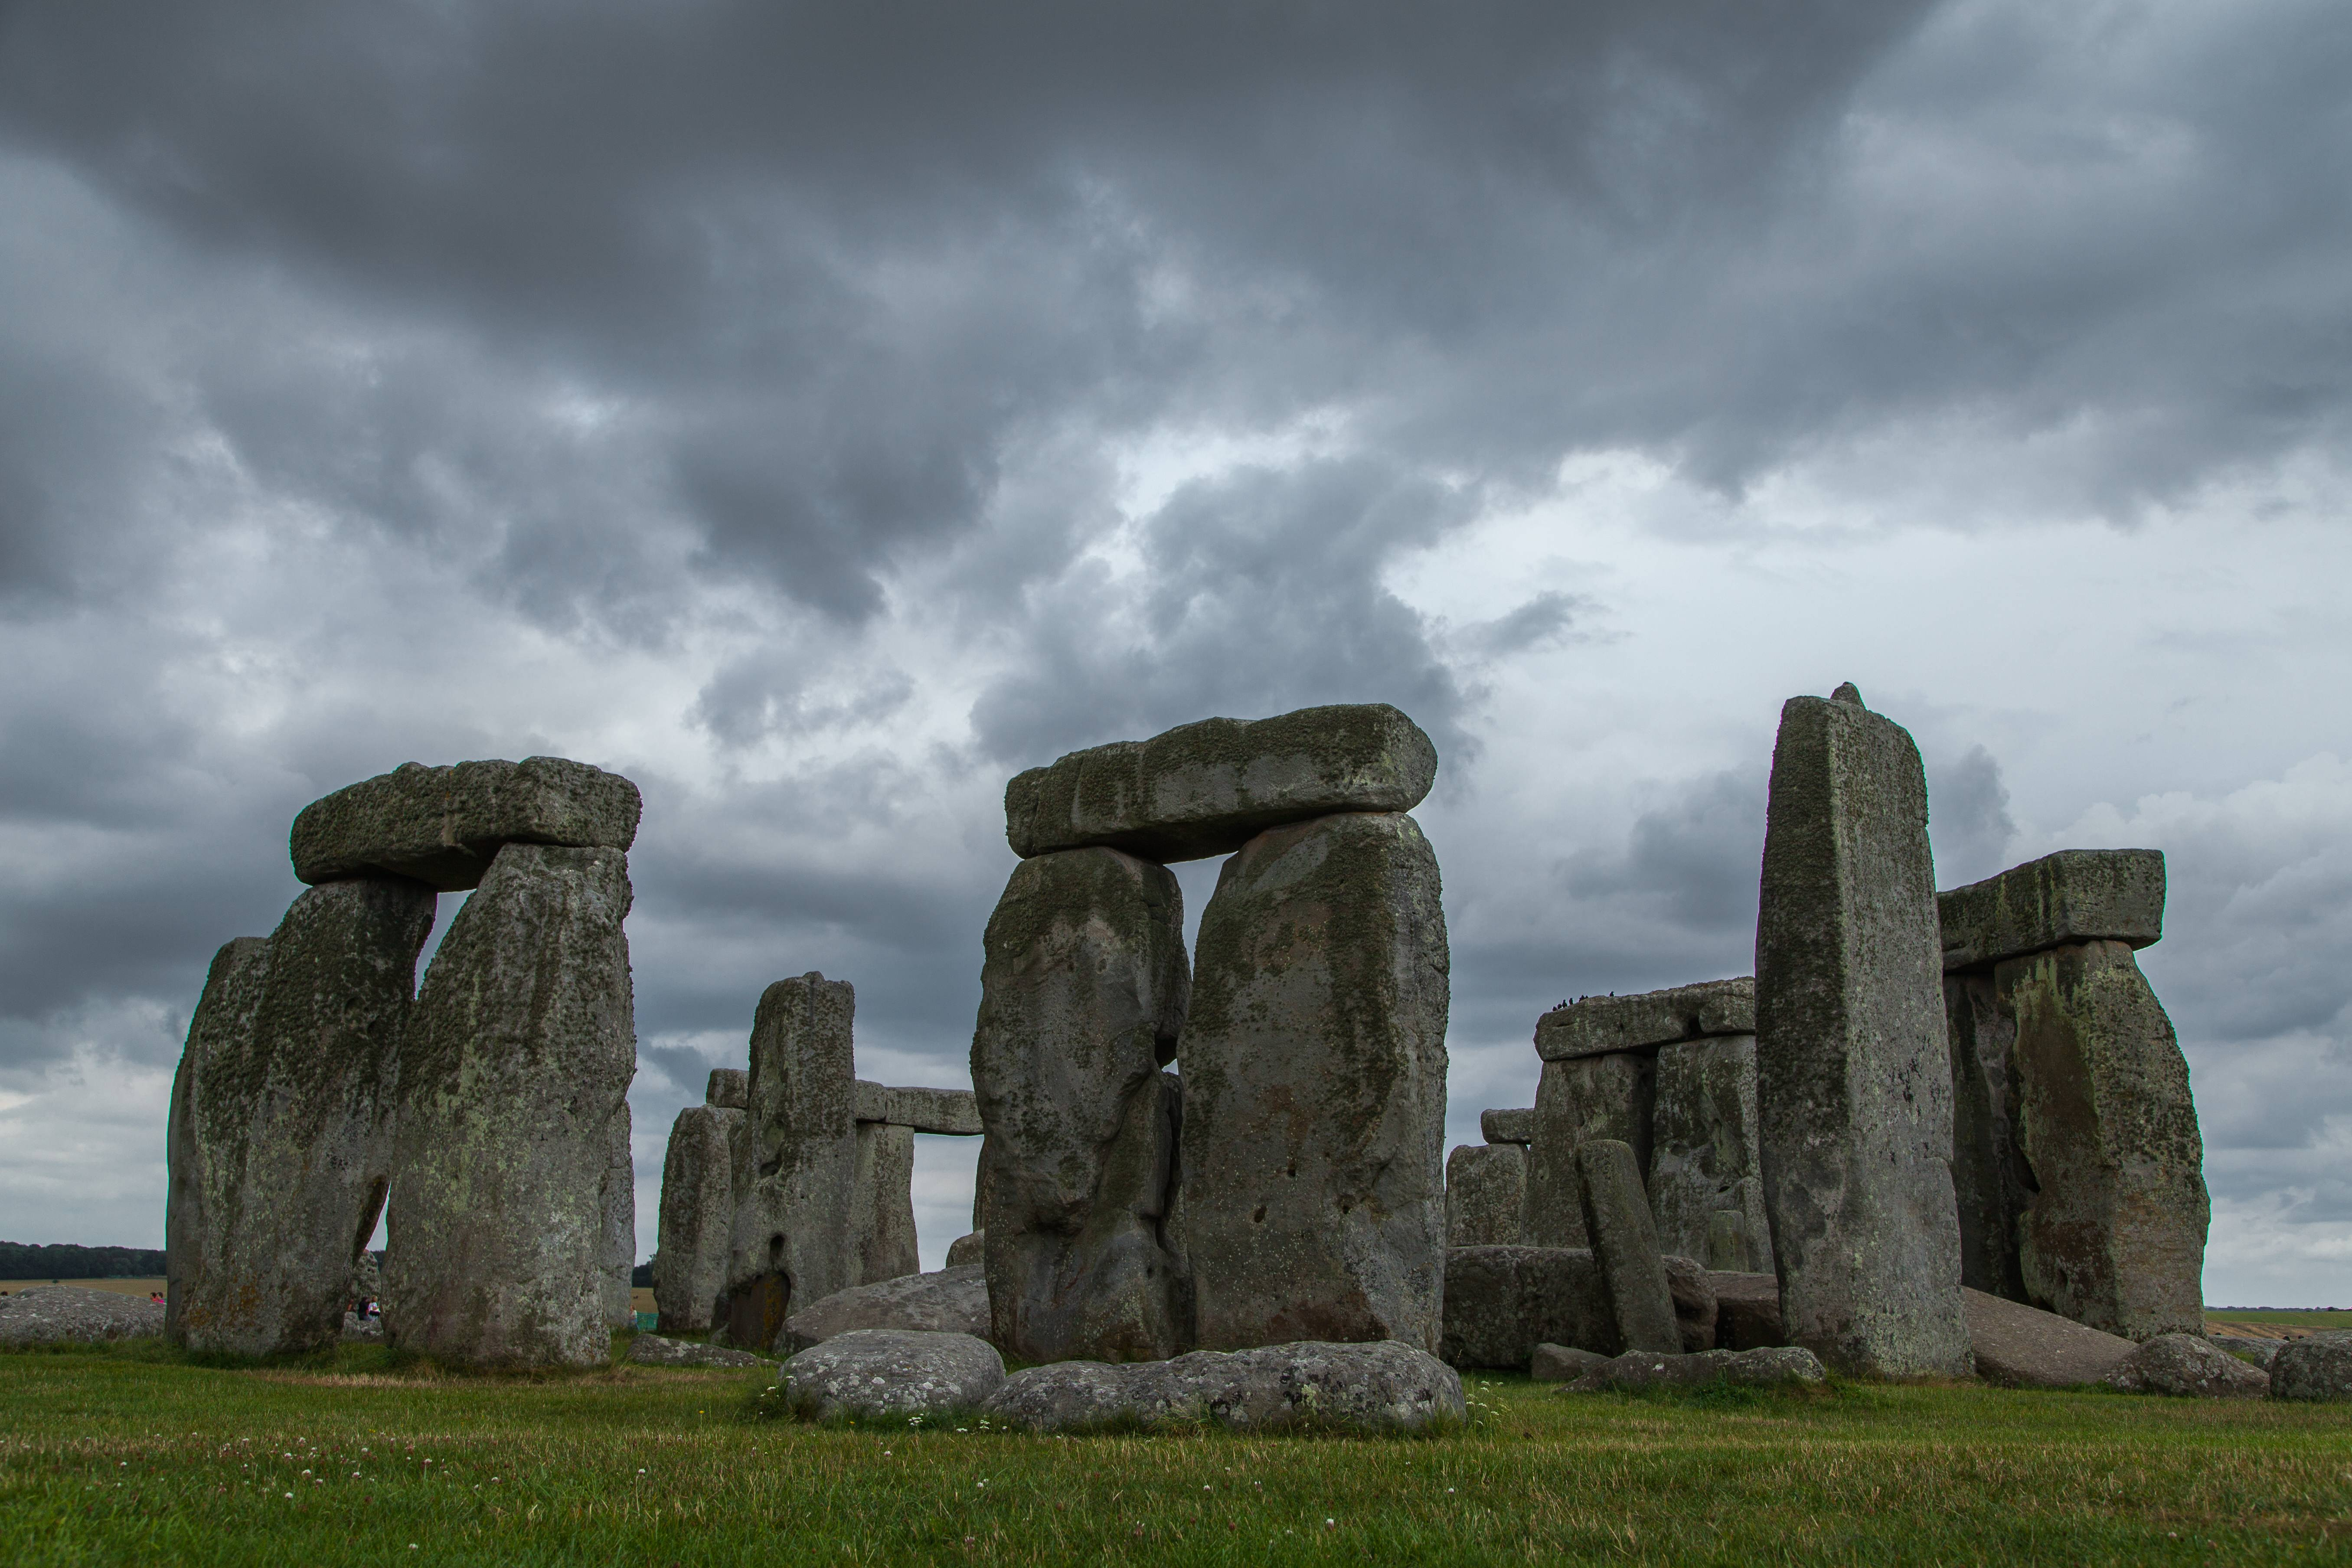 the story connected with stonehenge